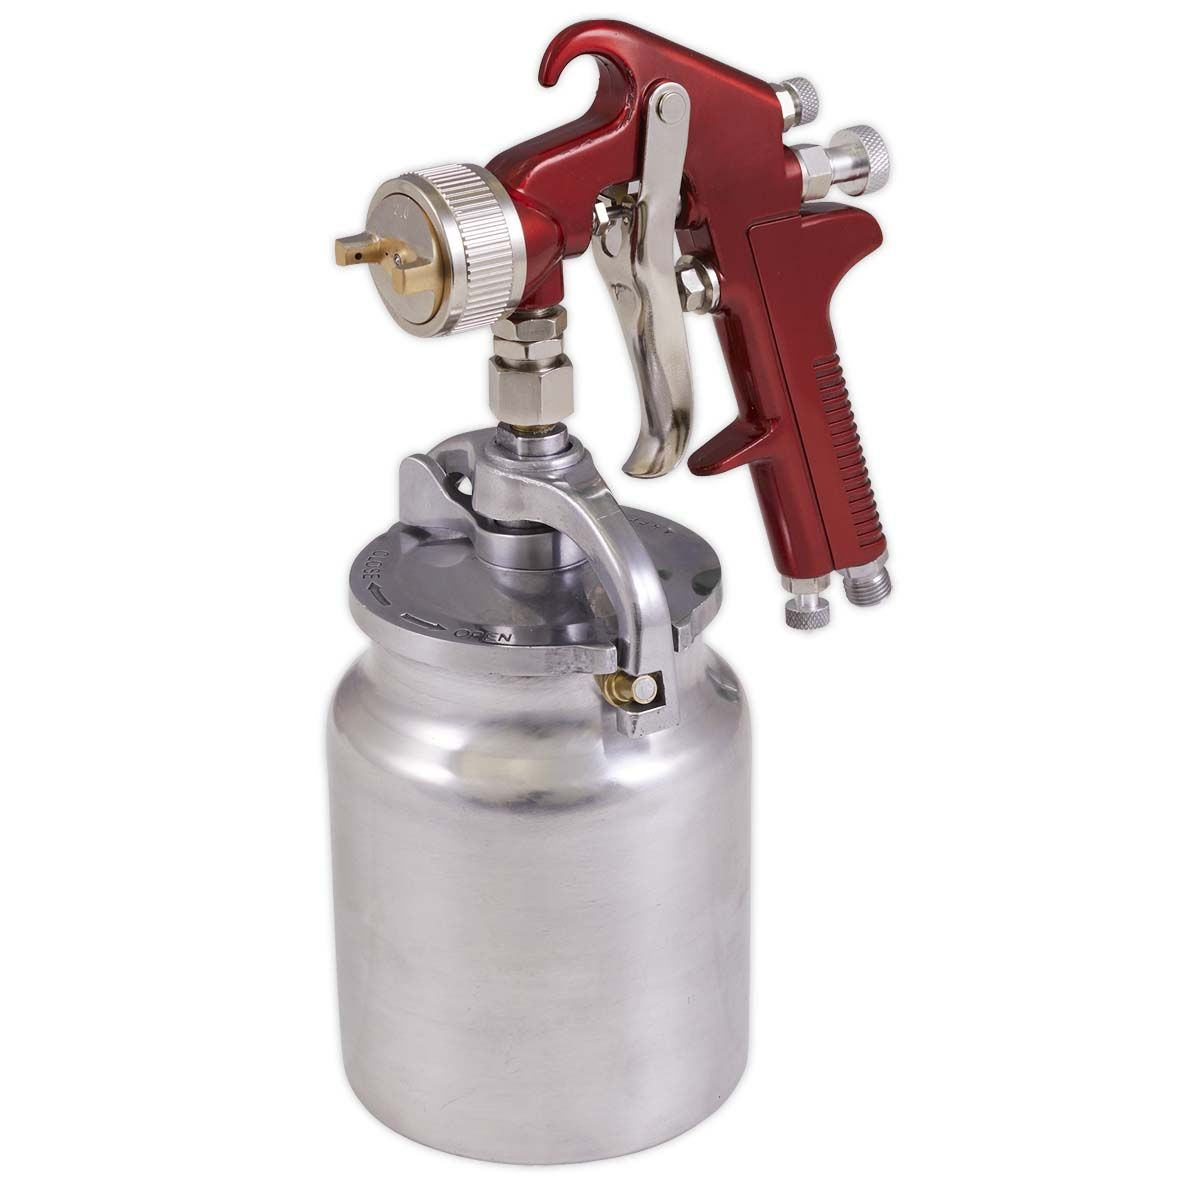 Sealey Suction Feed Spray Gun 2mm Set-Up